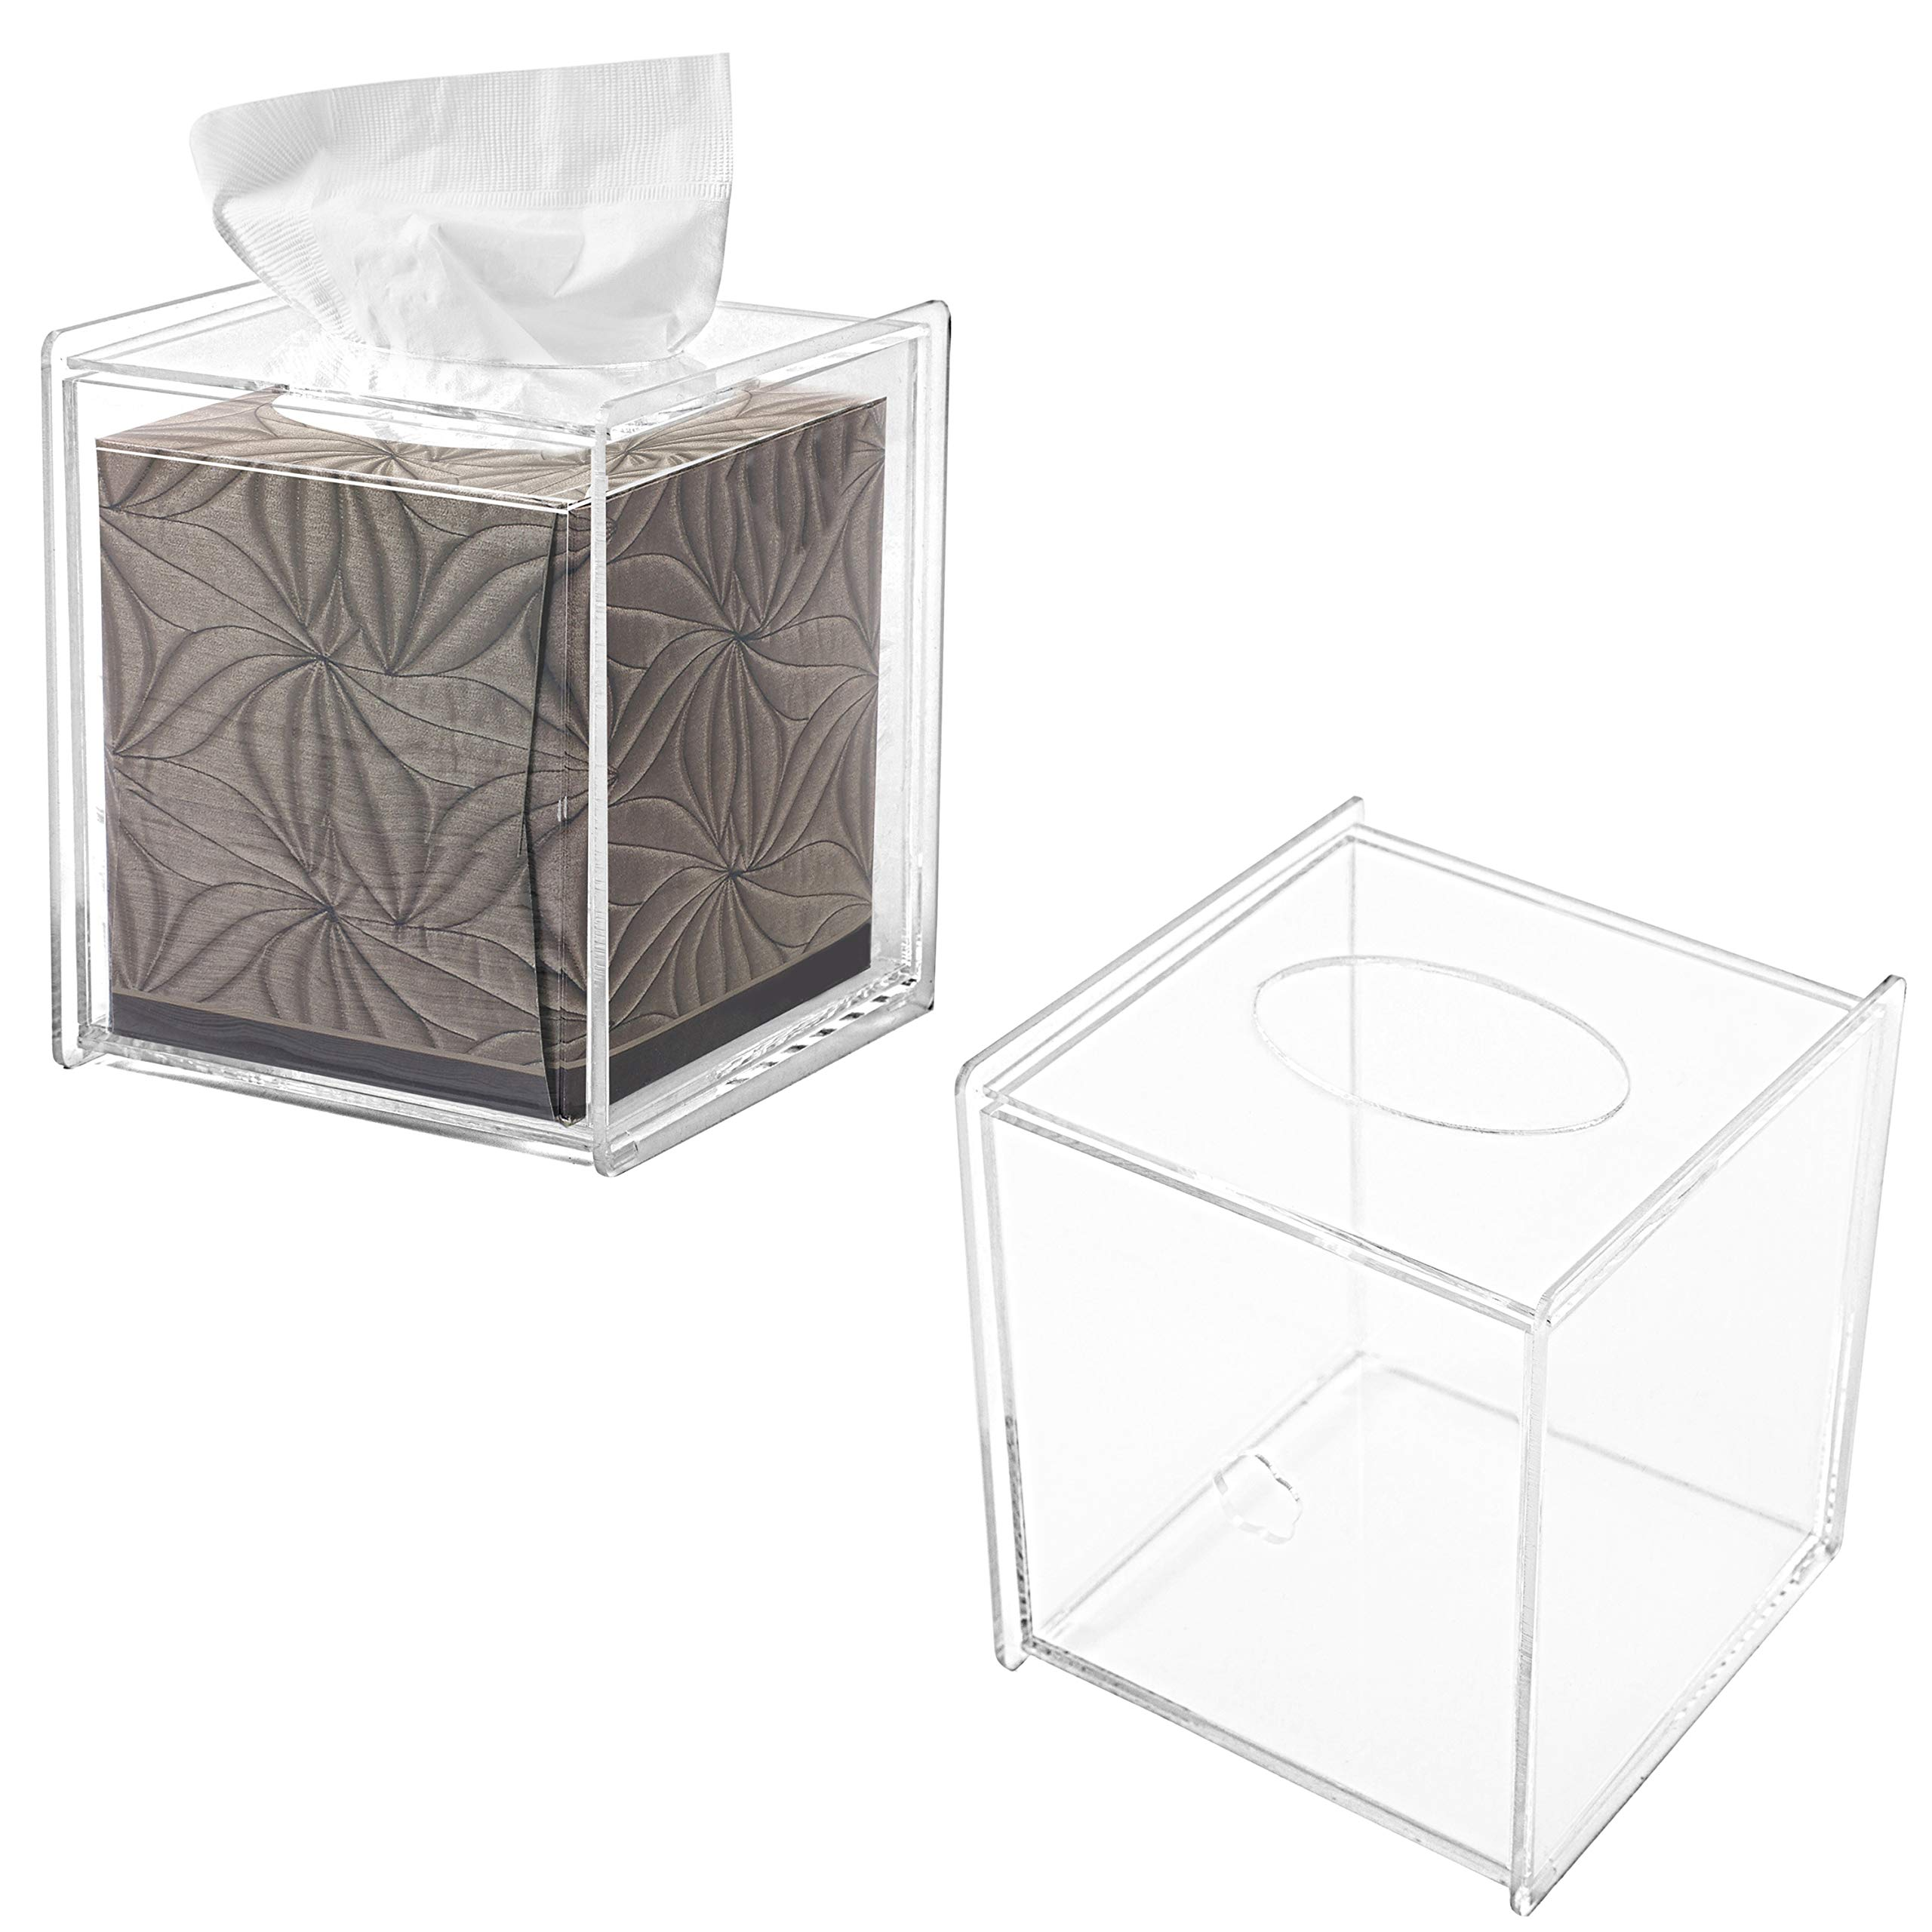 MyGift Clear Acrylic Square Tissue Box Covers, Set of 2